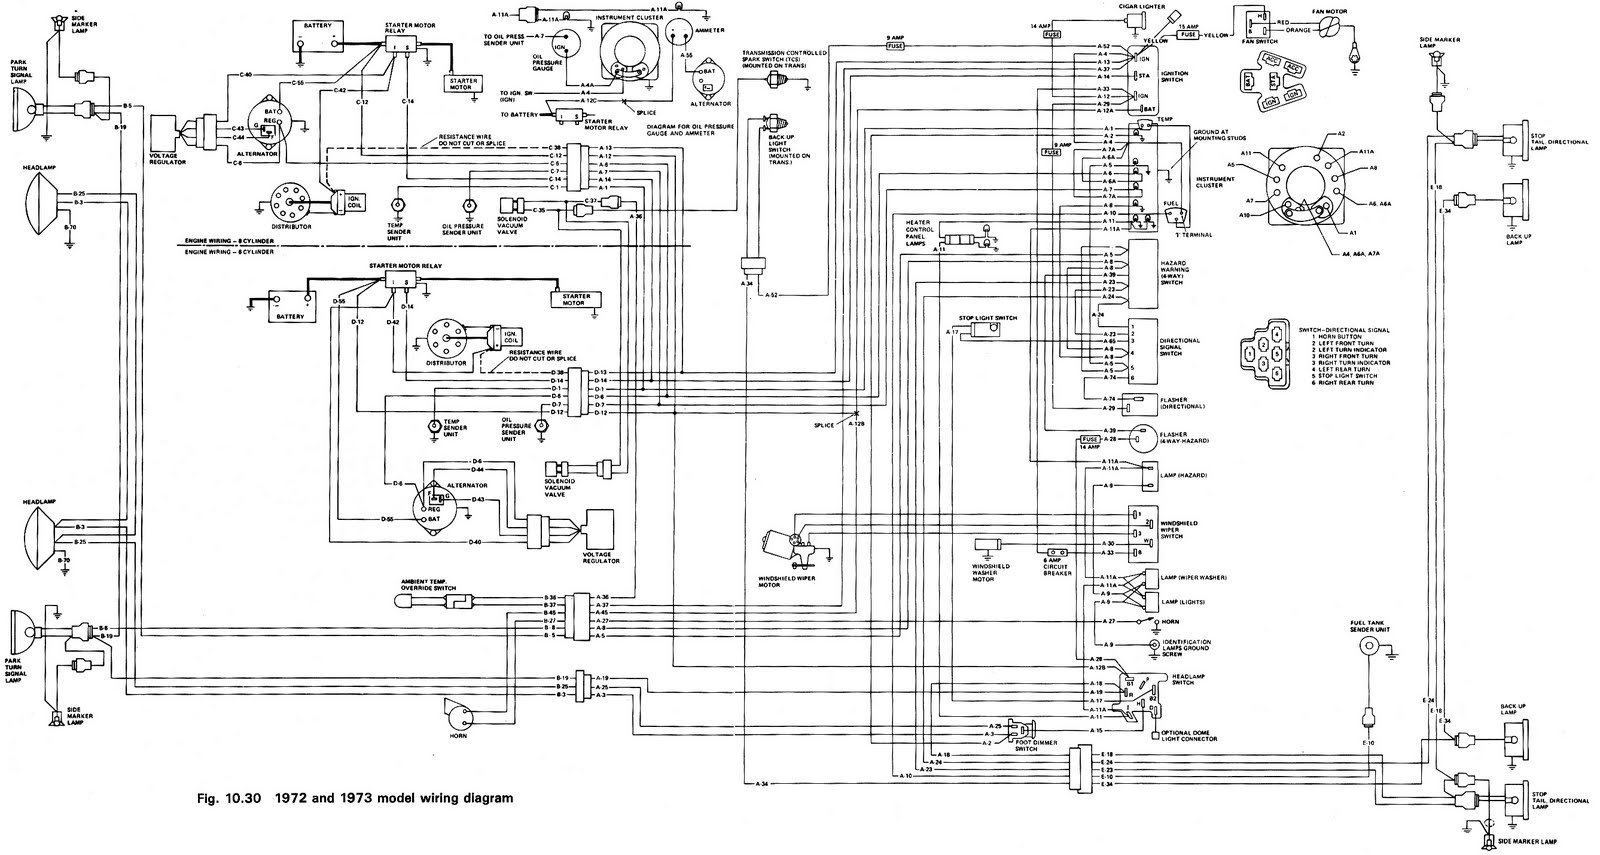 Autocar Wiring Diagram - WIRE Center •